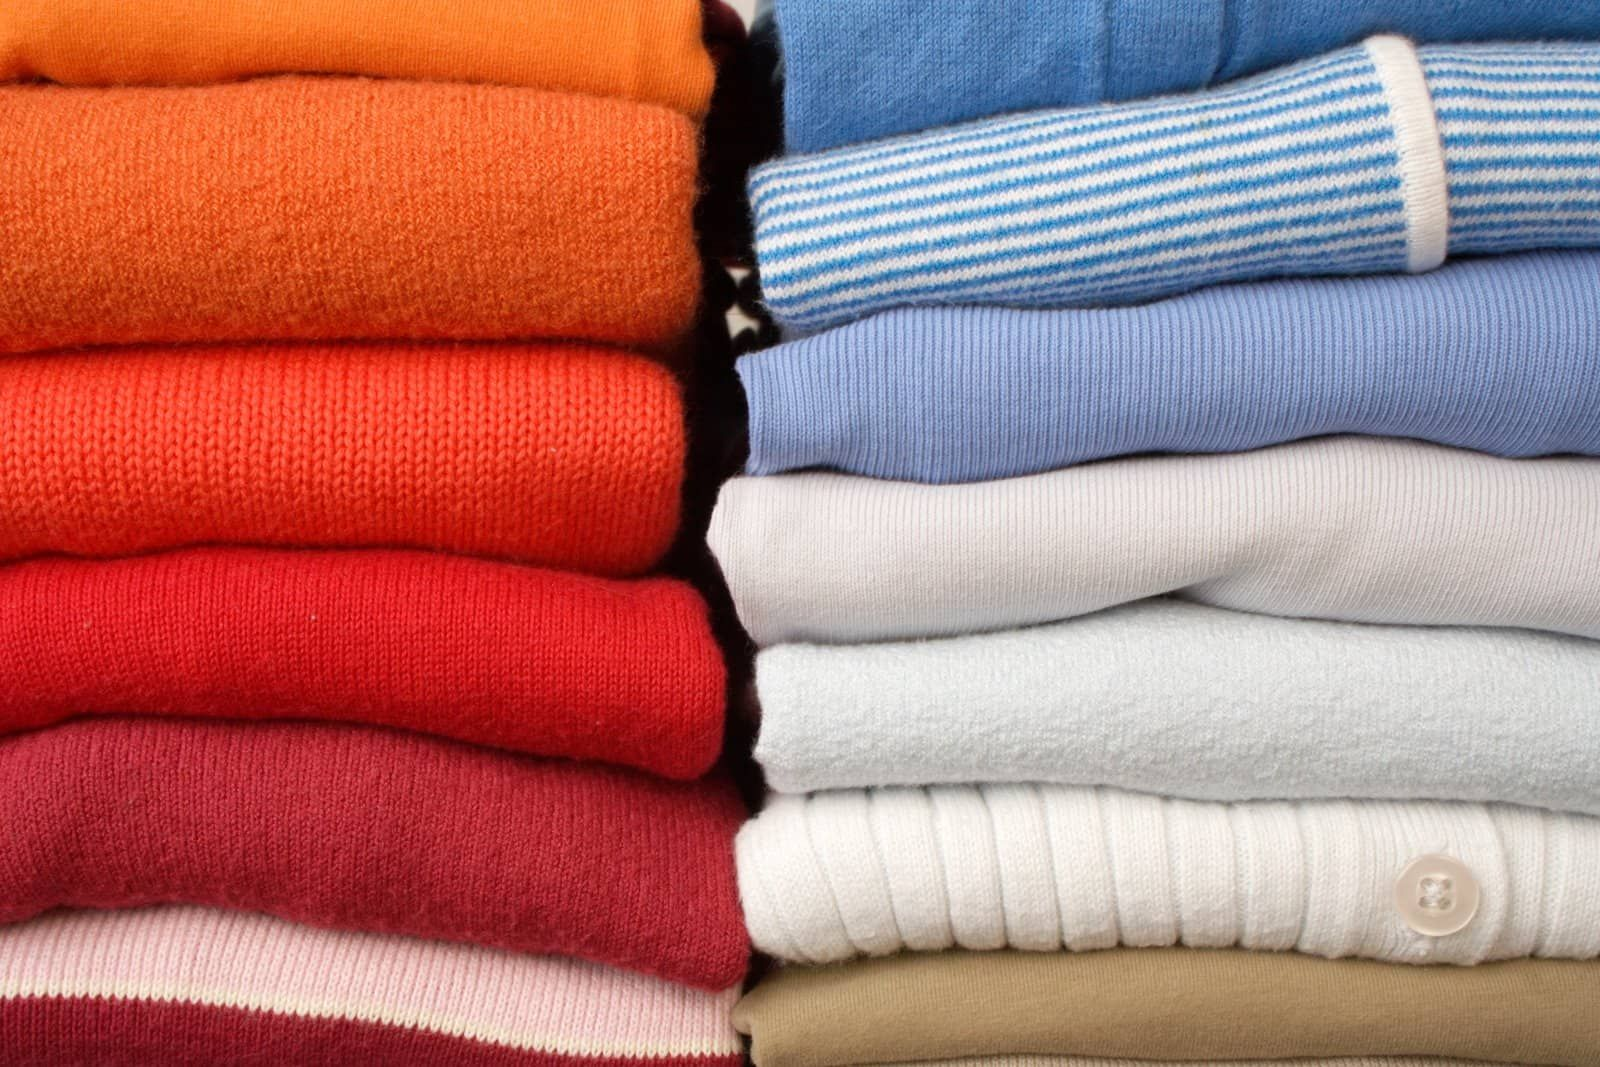 Get brilliantly clean laundry by using 1 cheap wonder